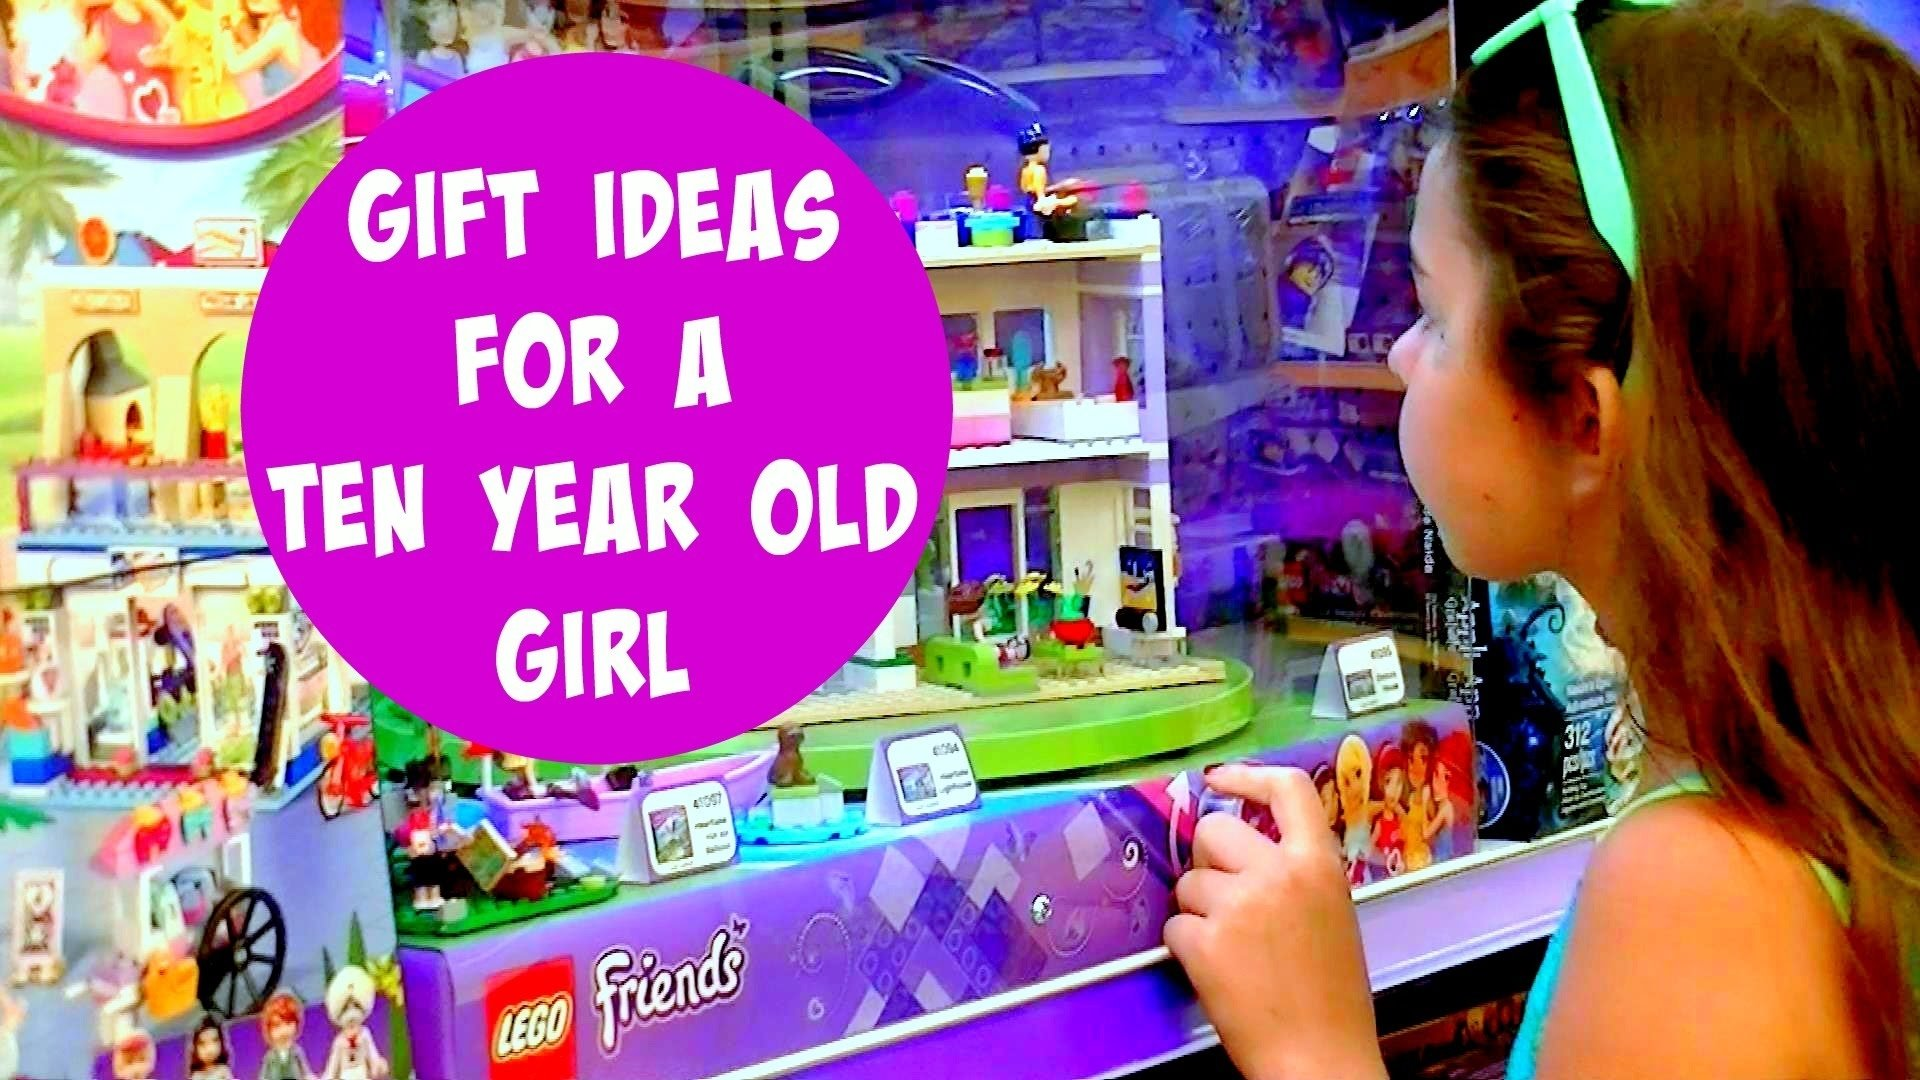 10 Wonderful 10 Year Old Gift Ideas birthday gift ideas for a 10 year old girl under 30 youtube 18 2021